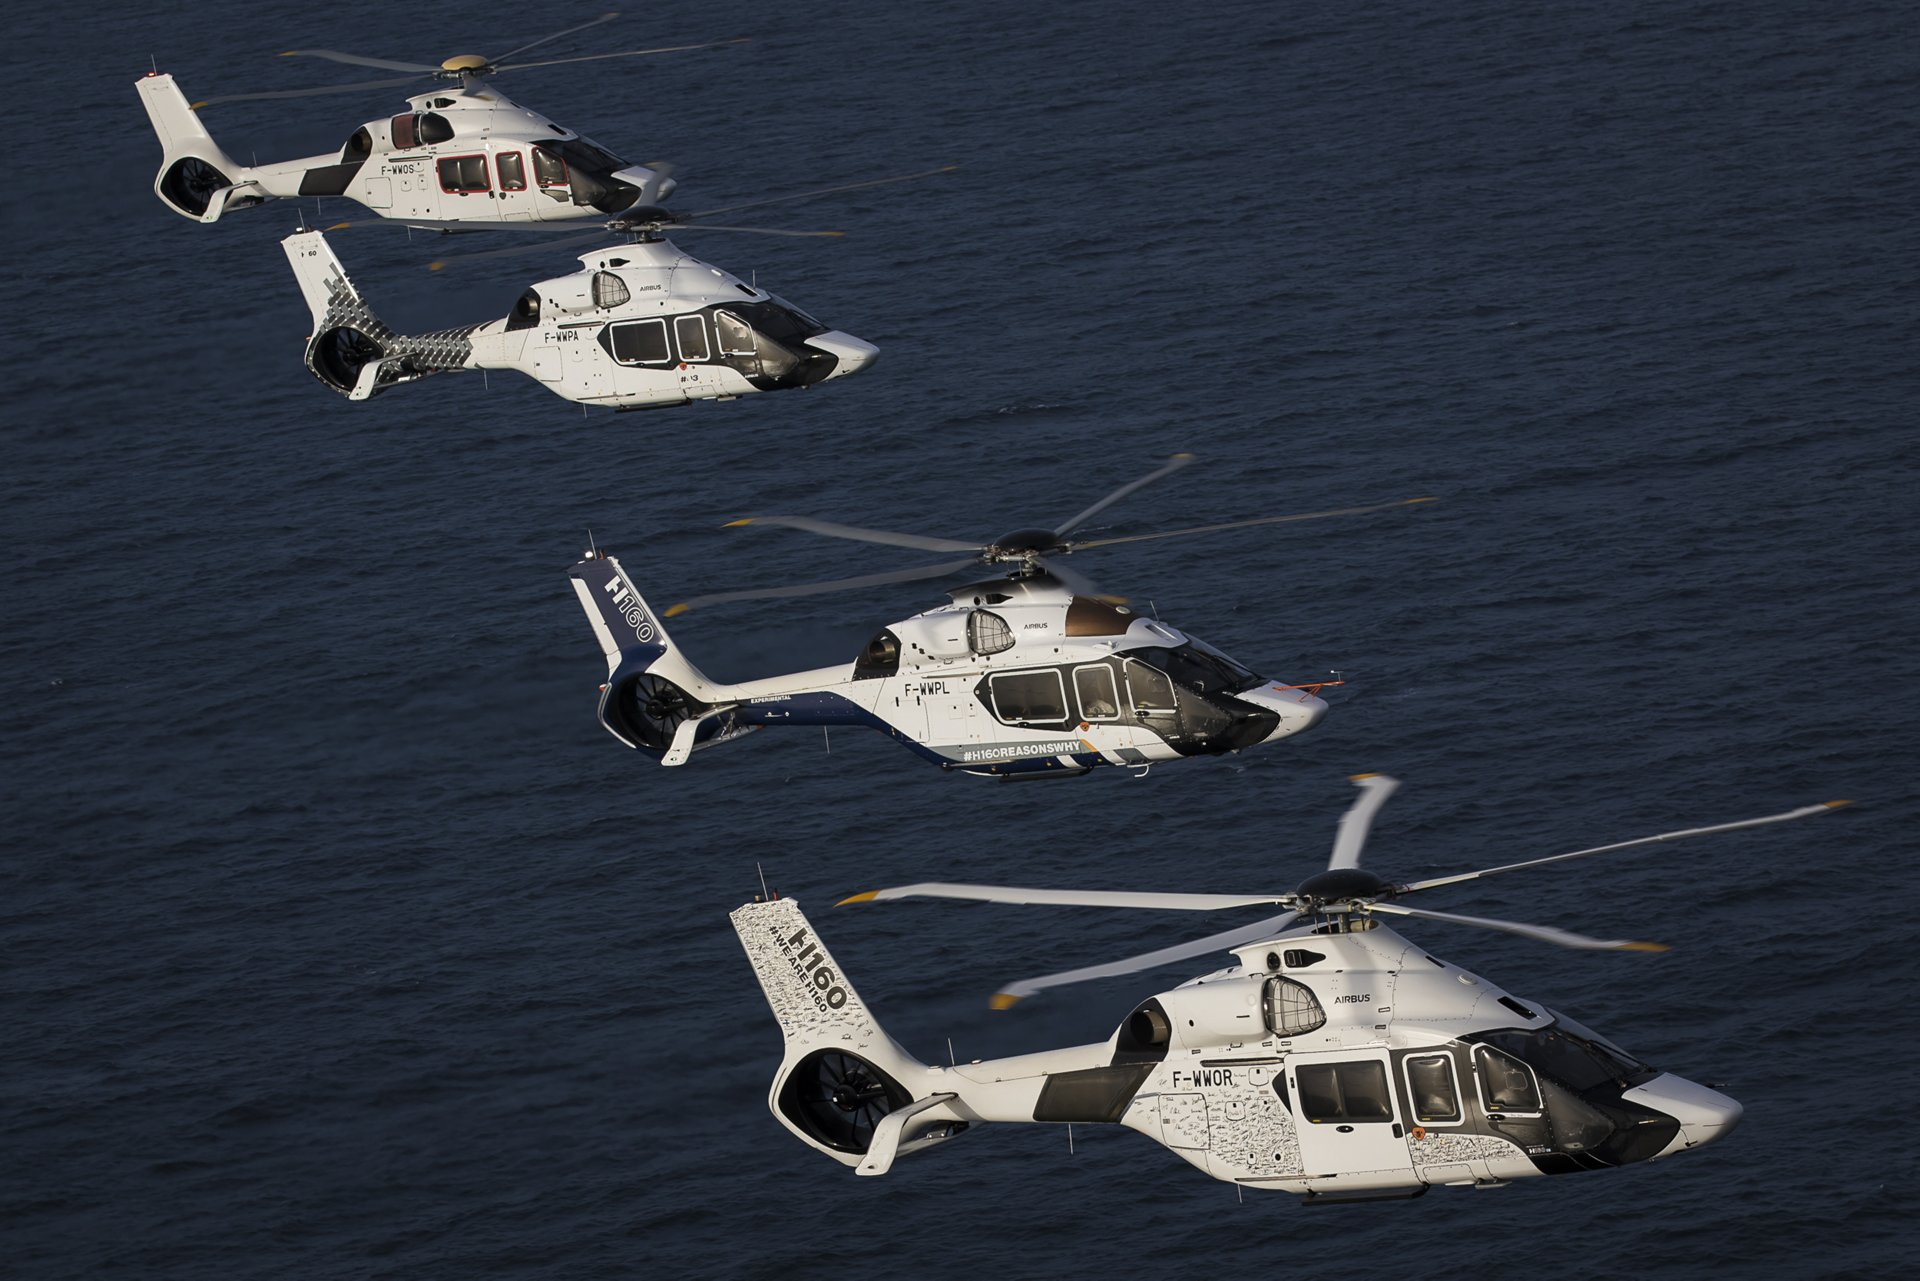 The French Armament General Directorate (DGA) is to supply four H160s to the French Navy for search and rescue missions through a partnership between Airbus Helicopters, Babcock, and Safran Helicopter Engines.